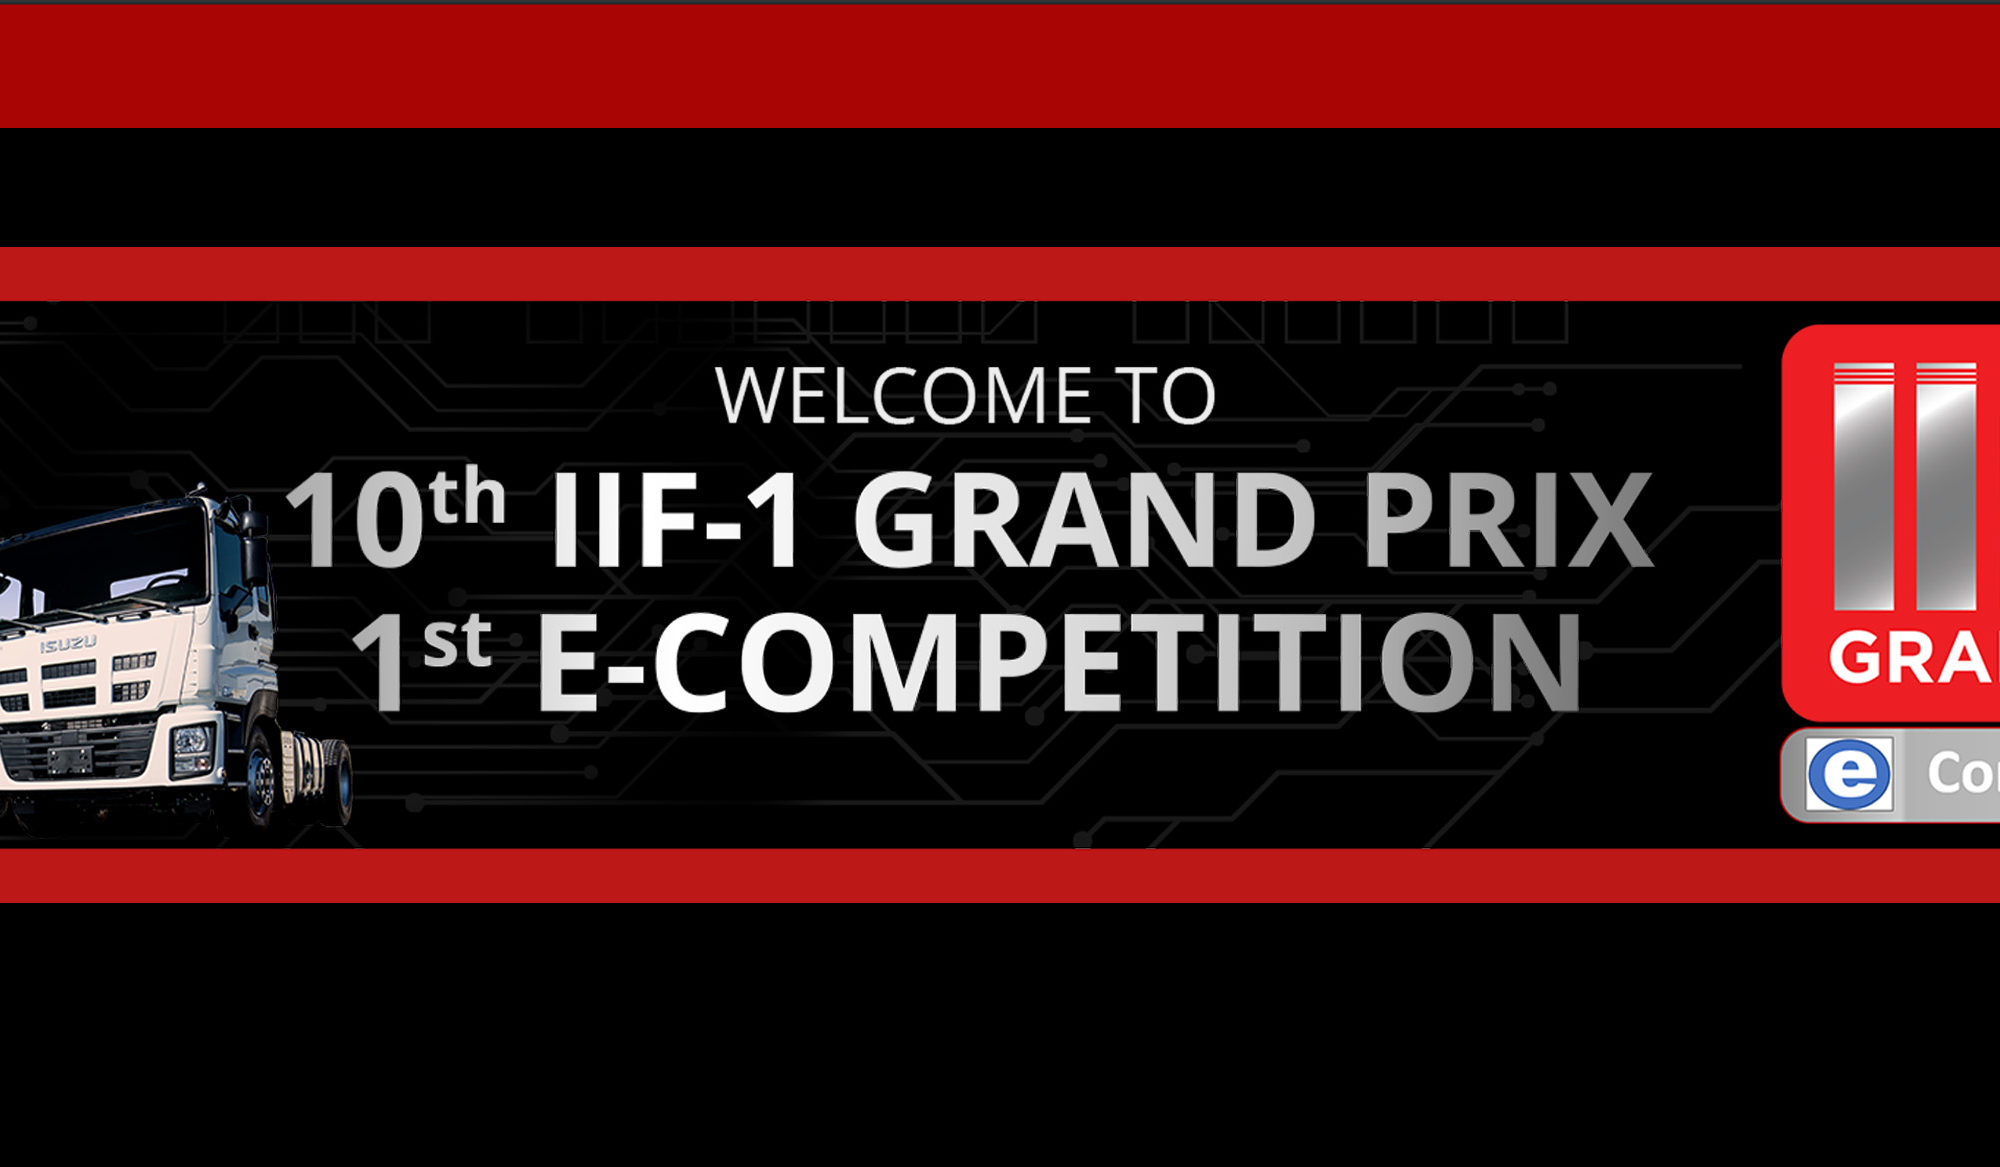 IIF 1 GP E-Competition 2021 Banner